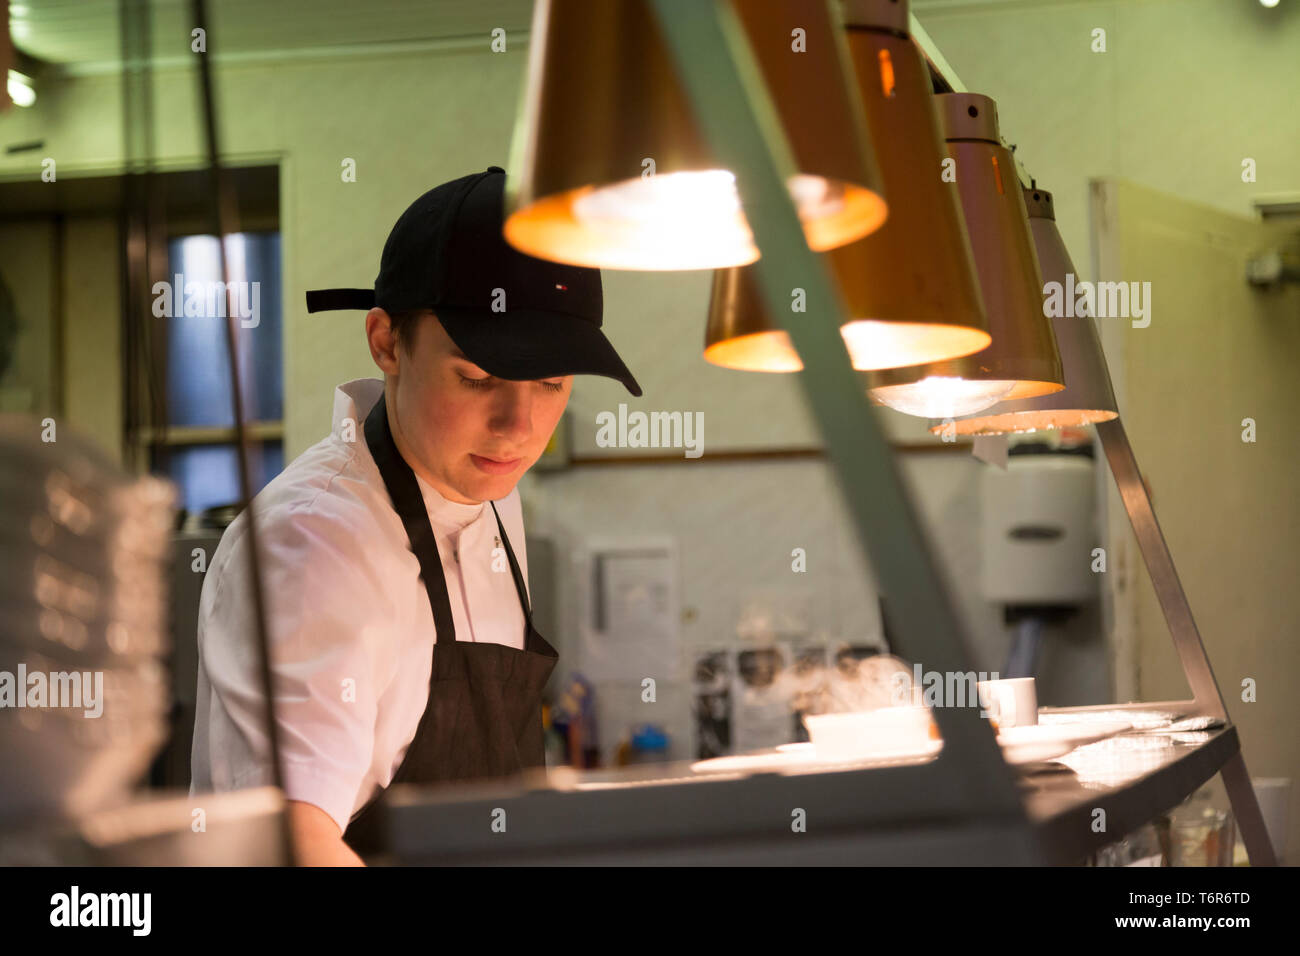 Young Sous-Chef preparing food - Stock Image